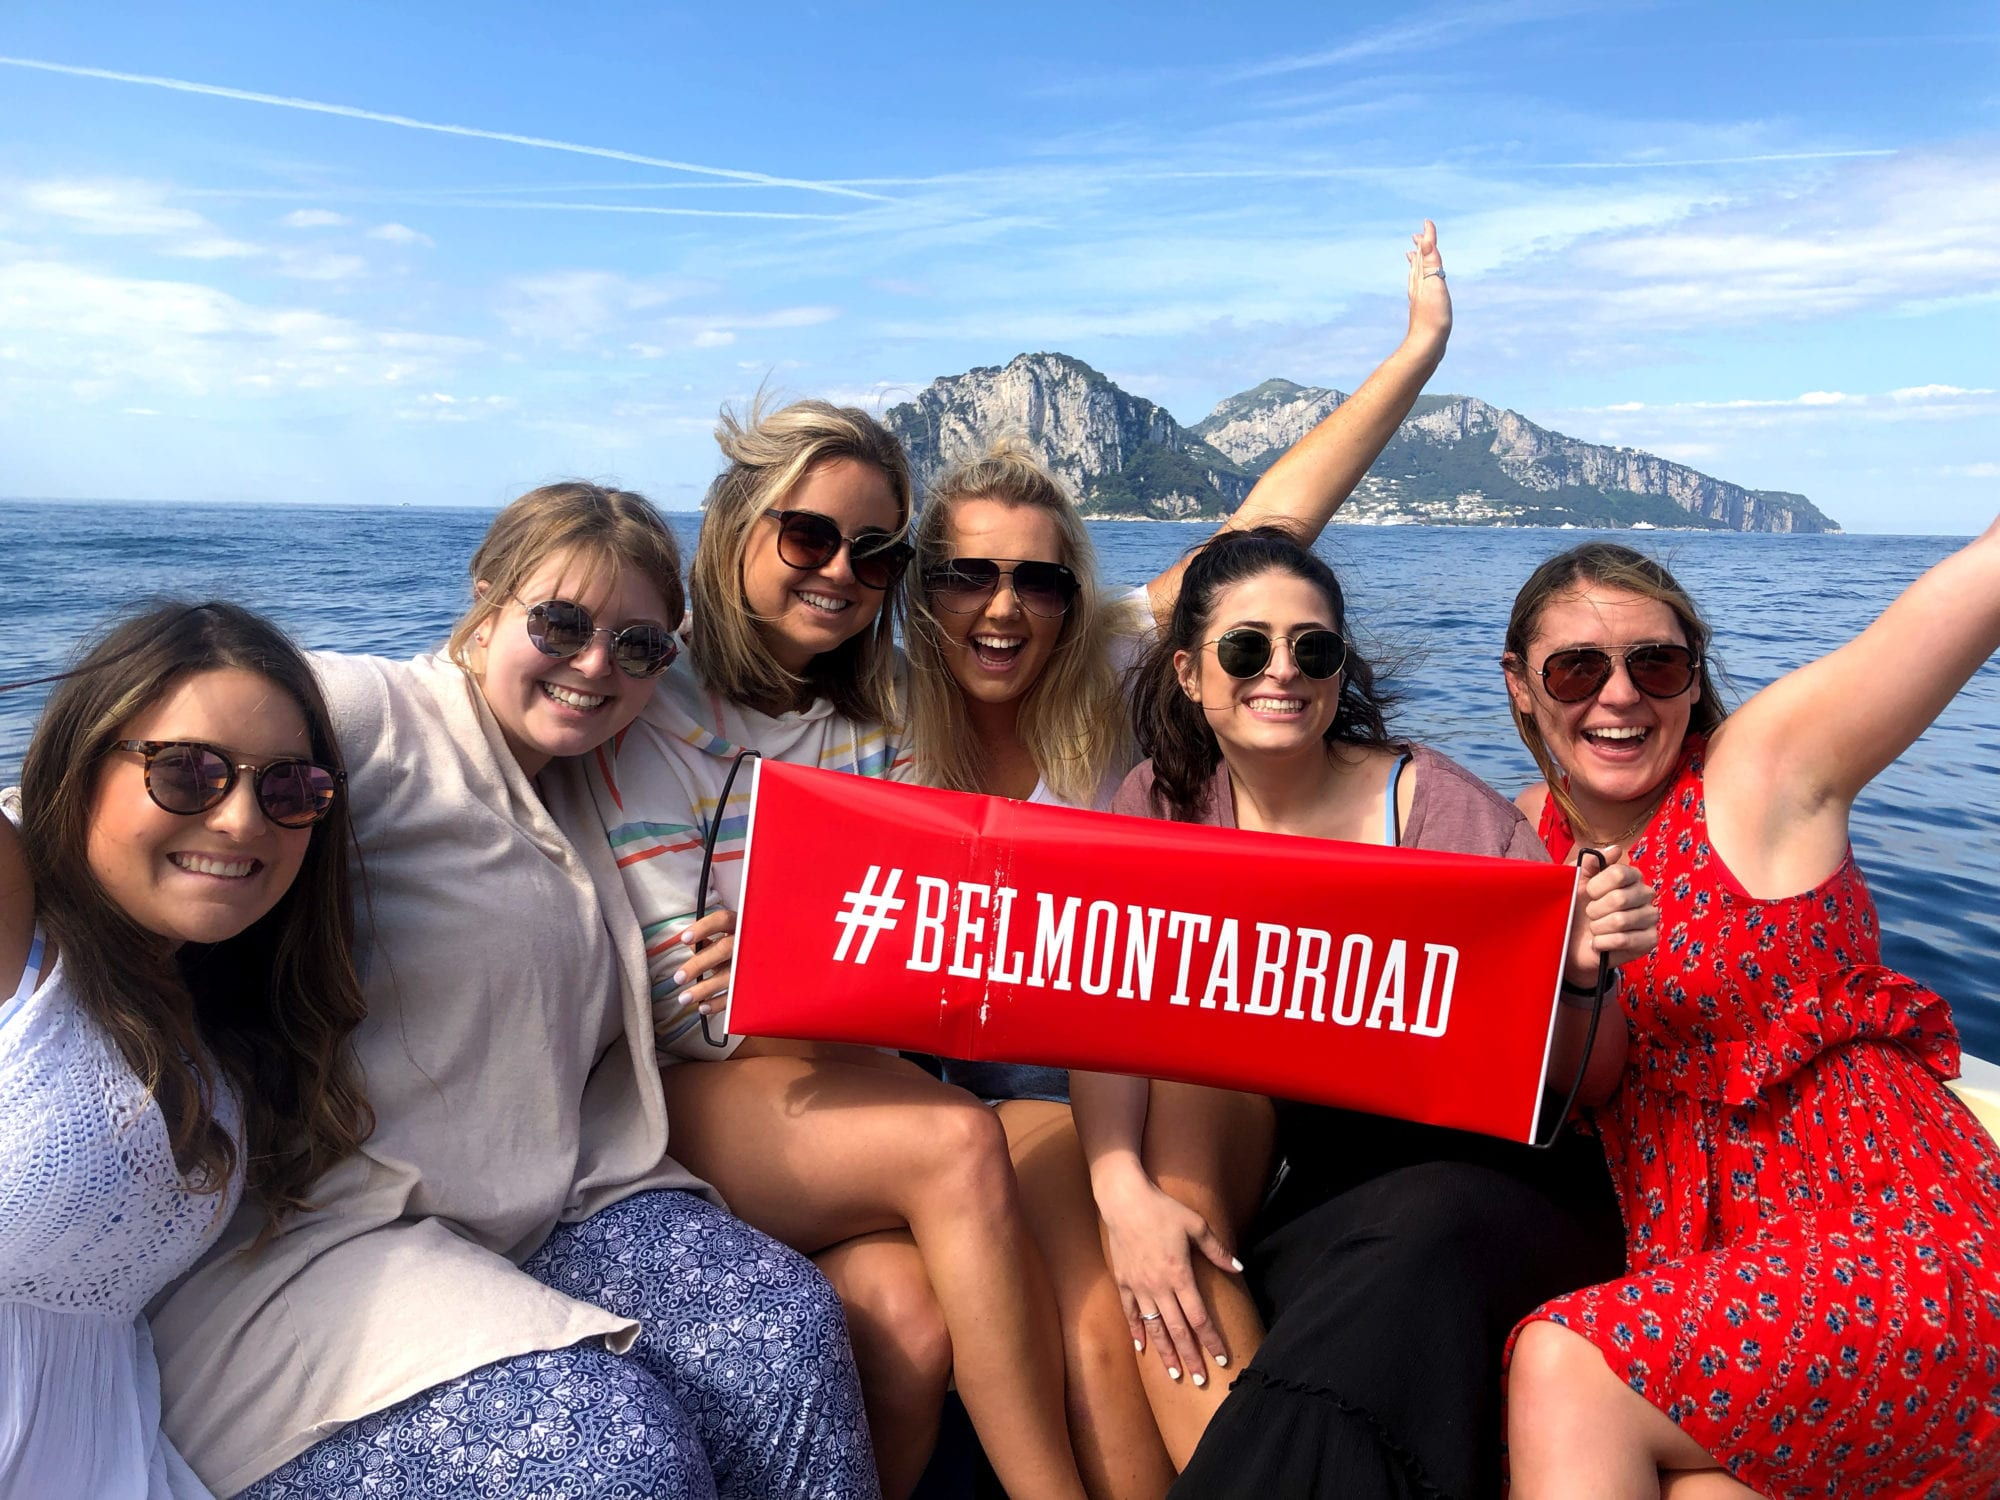 Belmont students on a boat in the Mediterranean